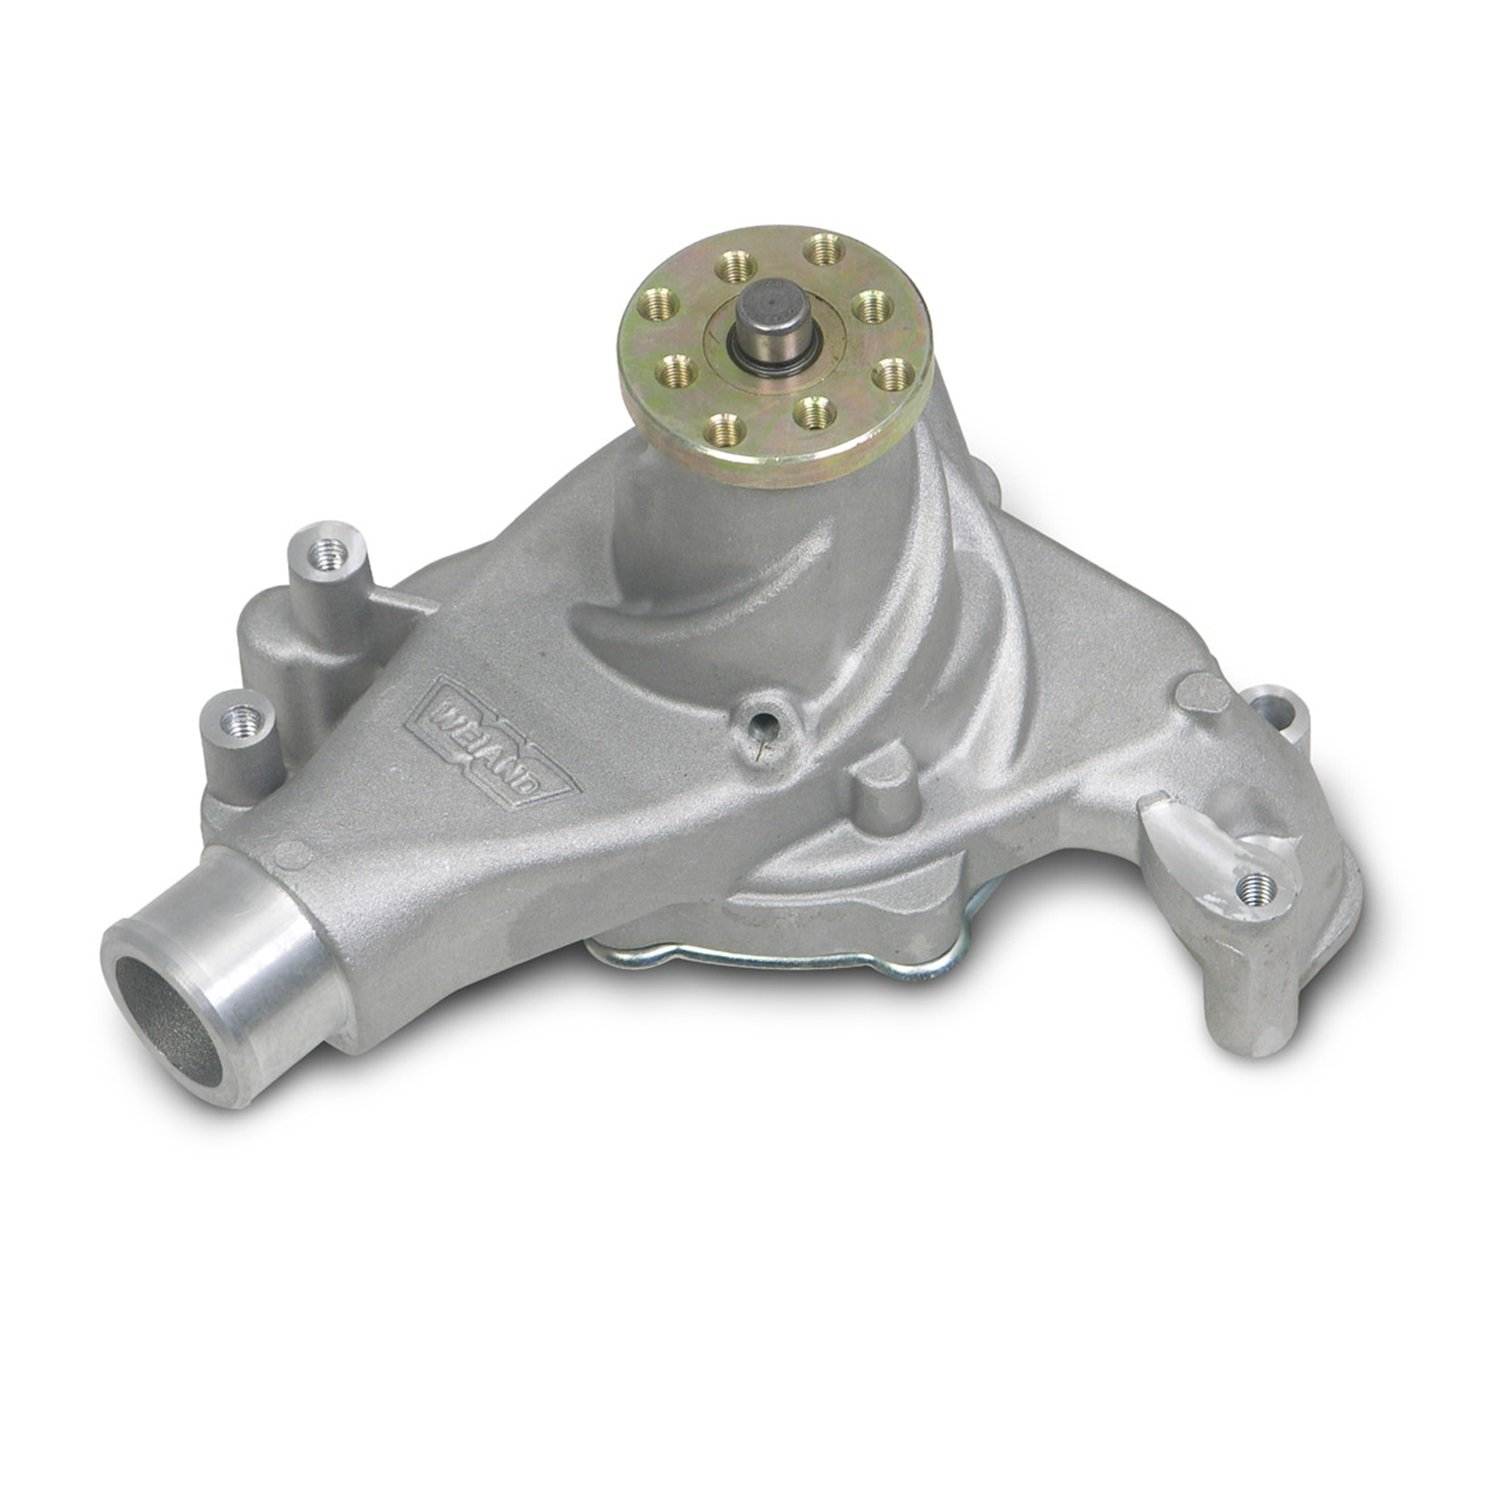 Weiand 9240 Action Plus Water Pump